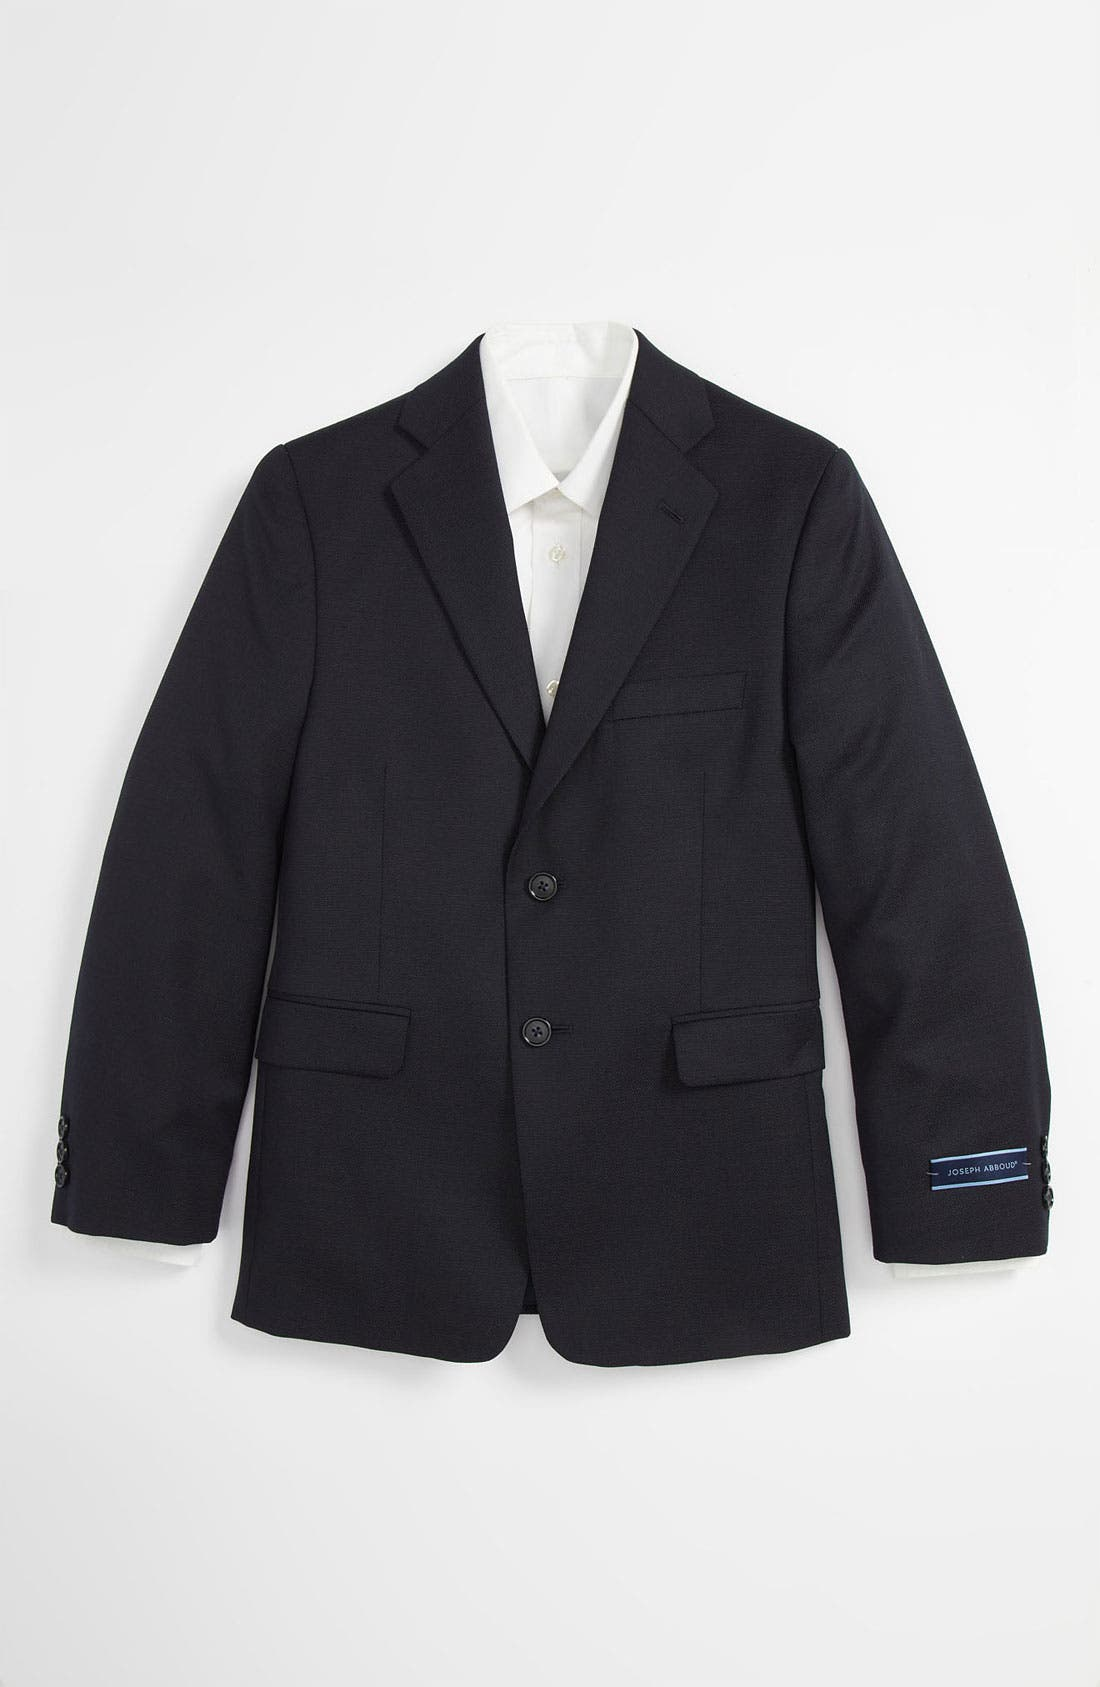 Alternate Image 1 Selected - Joseph Abboud Suit Blazer (Big Boys)